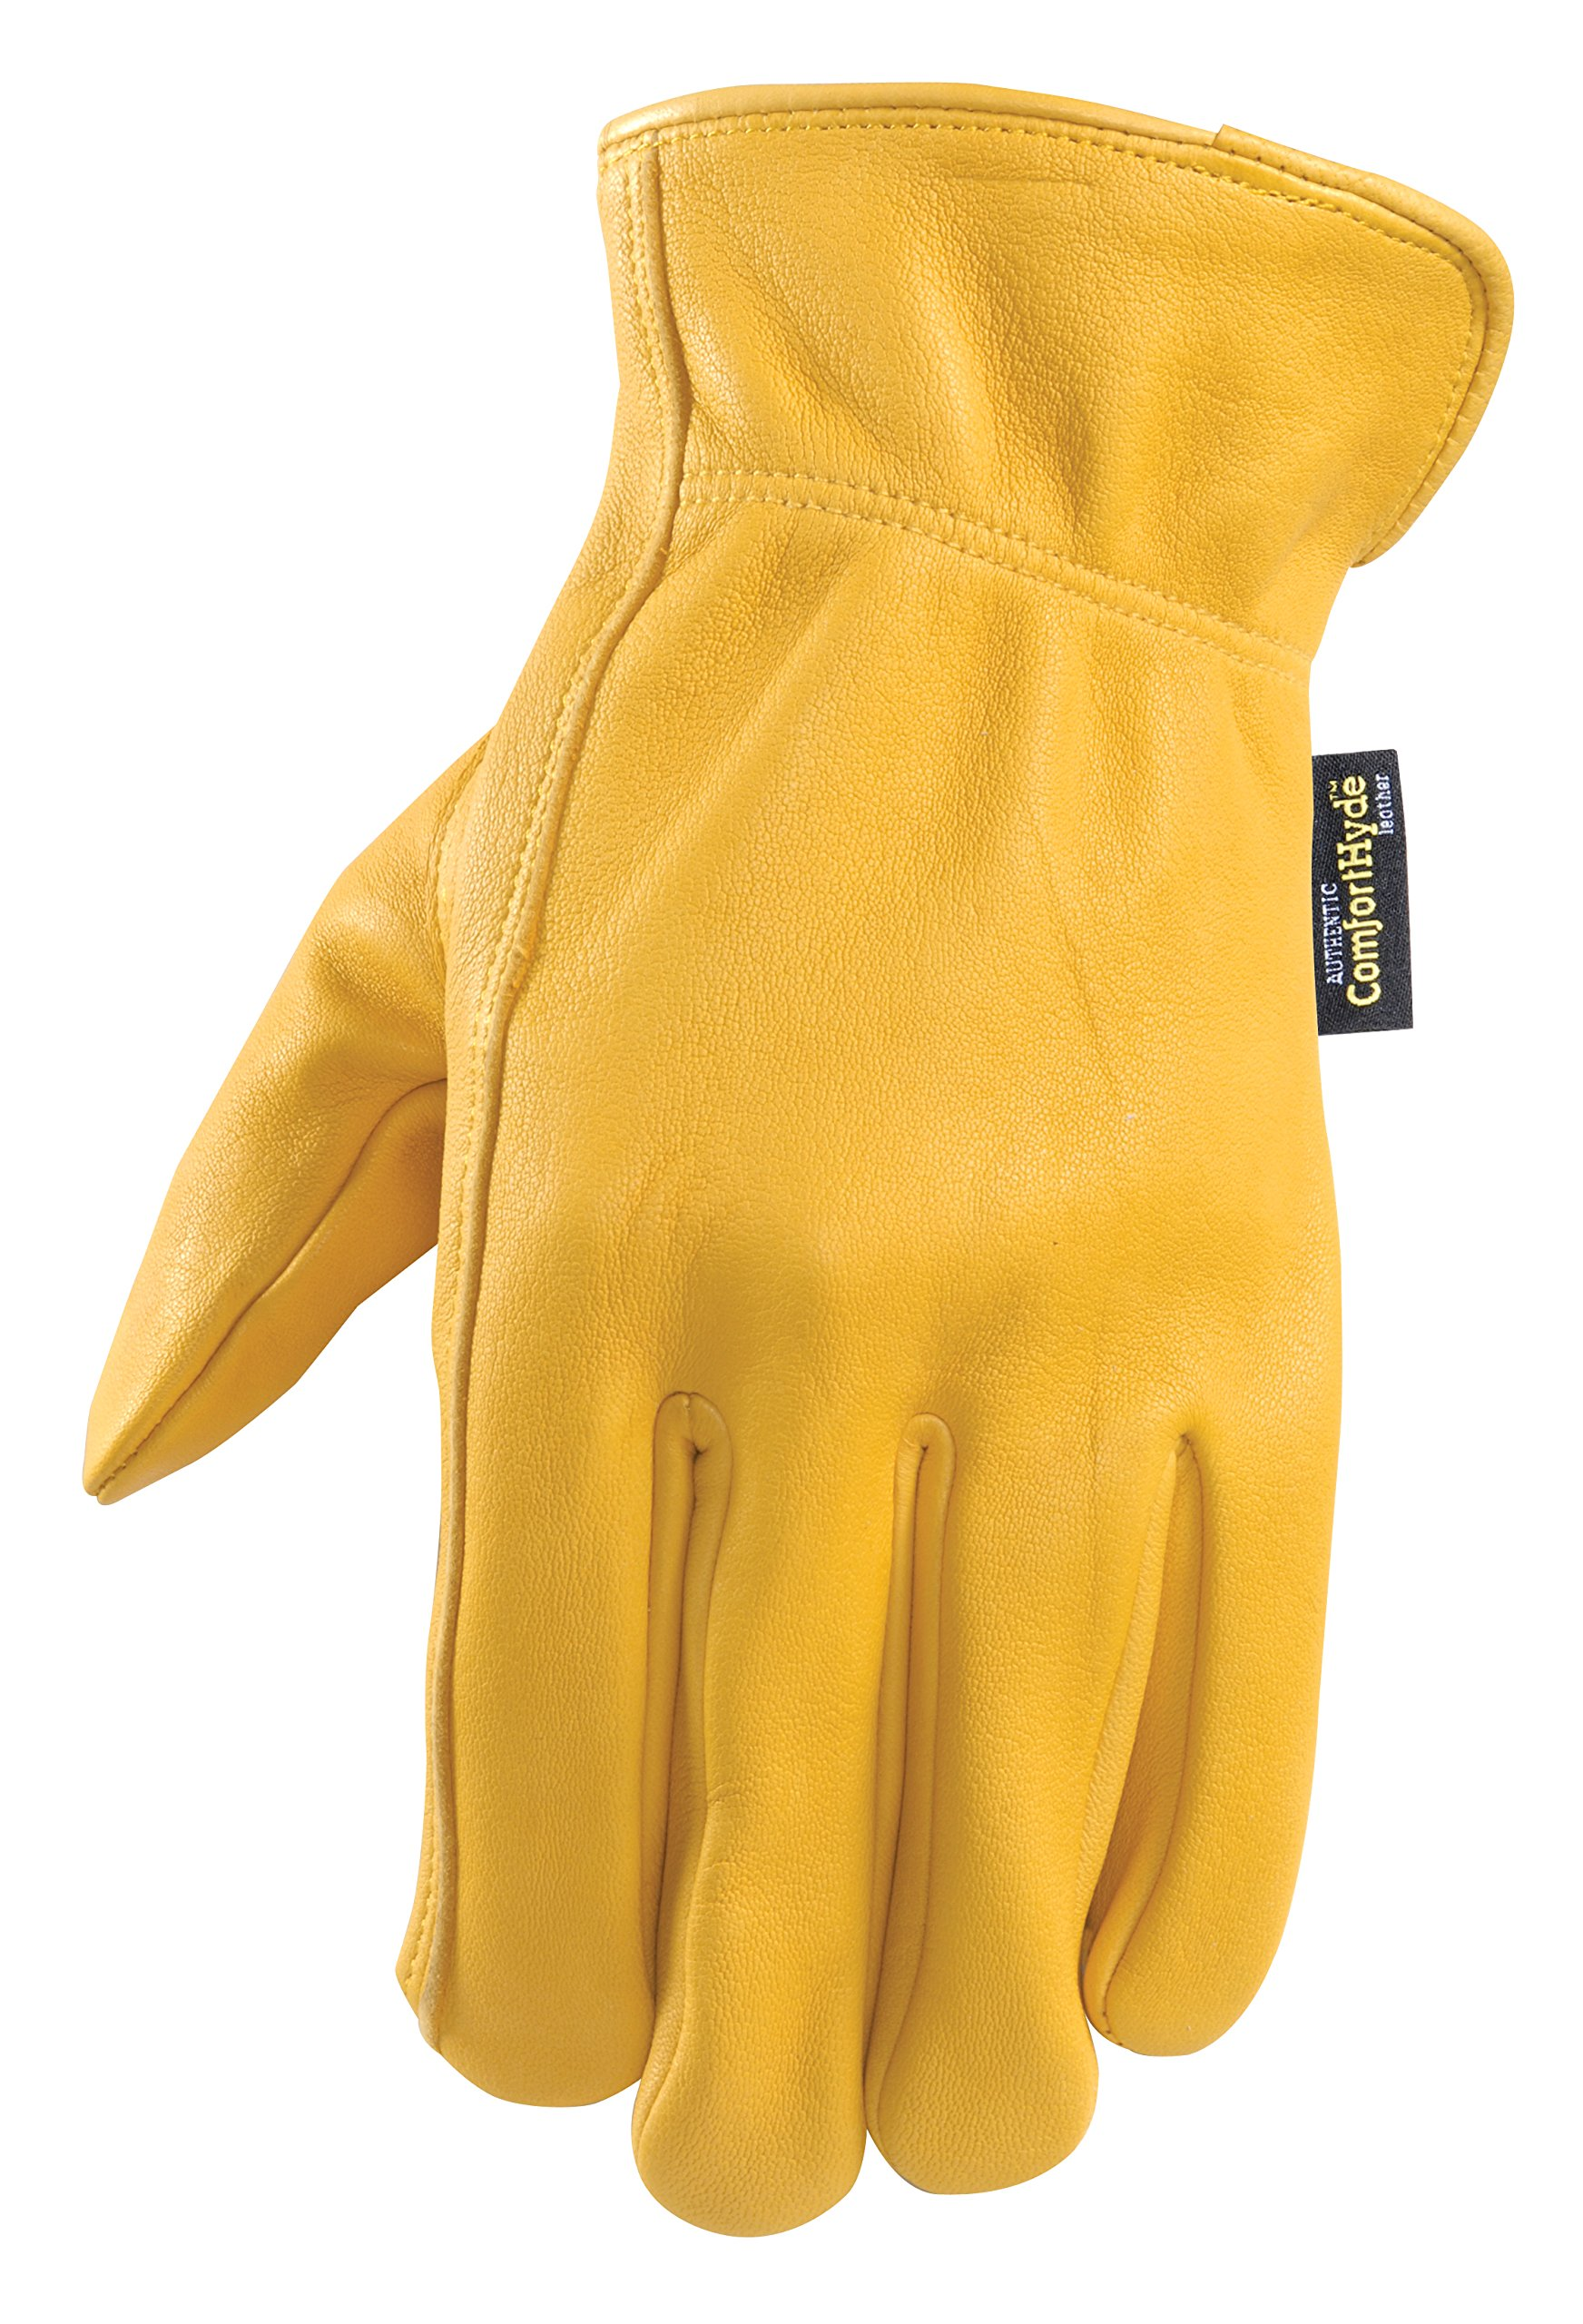 Full Leather Men's Driving Gloves, Light-Duty Work Gloves, Soft, Supple, X-Large (Wells Lamont 984XL) by Wells Lamont